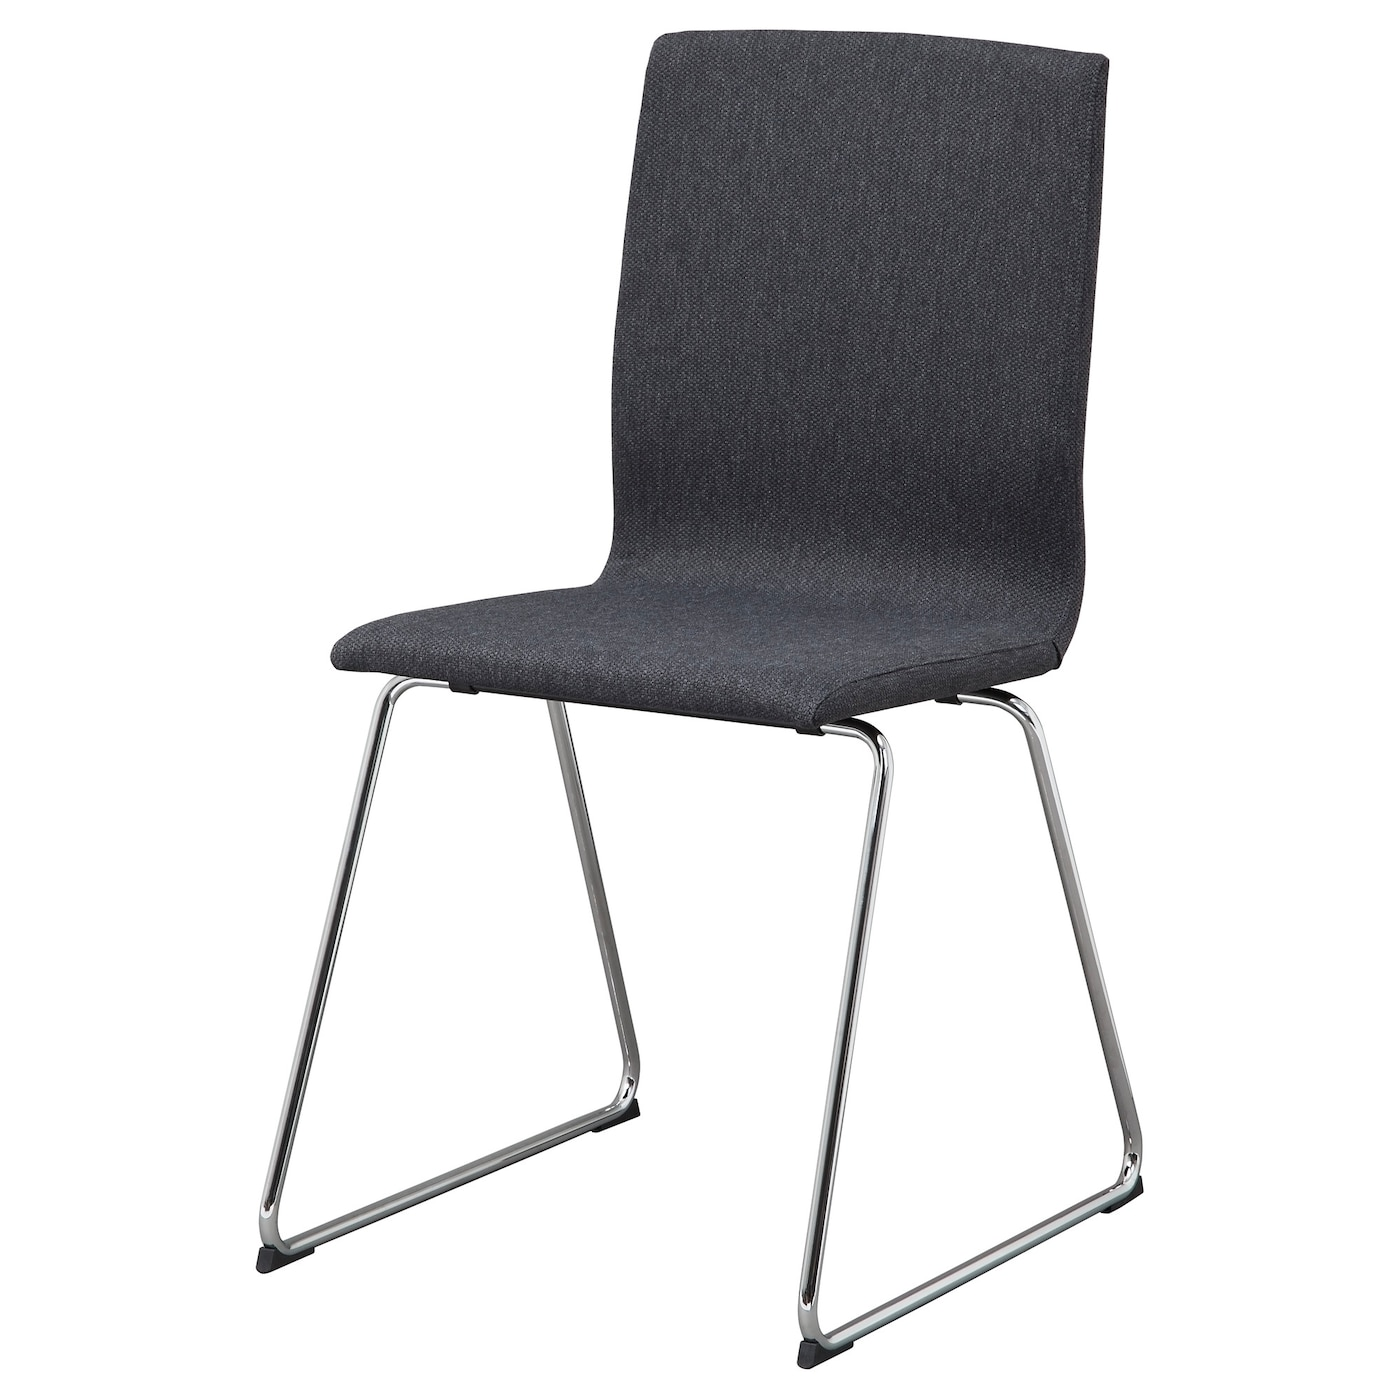 IKEA VOLFGANG chair You sit comfortably thanks to the restful flexibility of the seat.